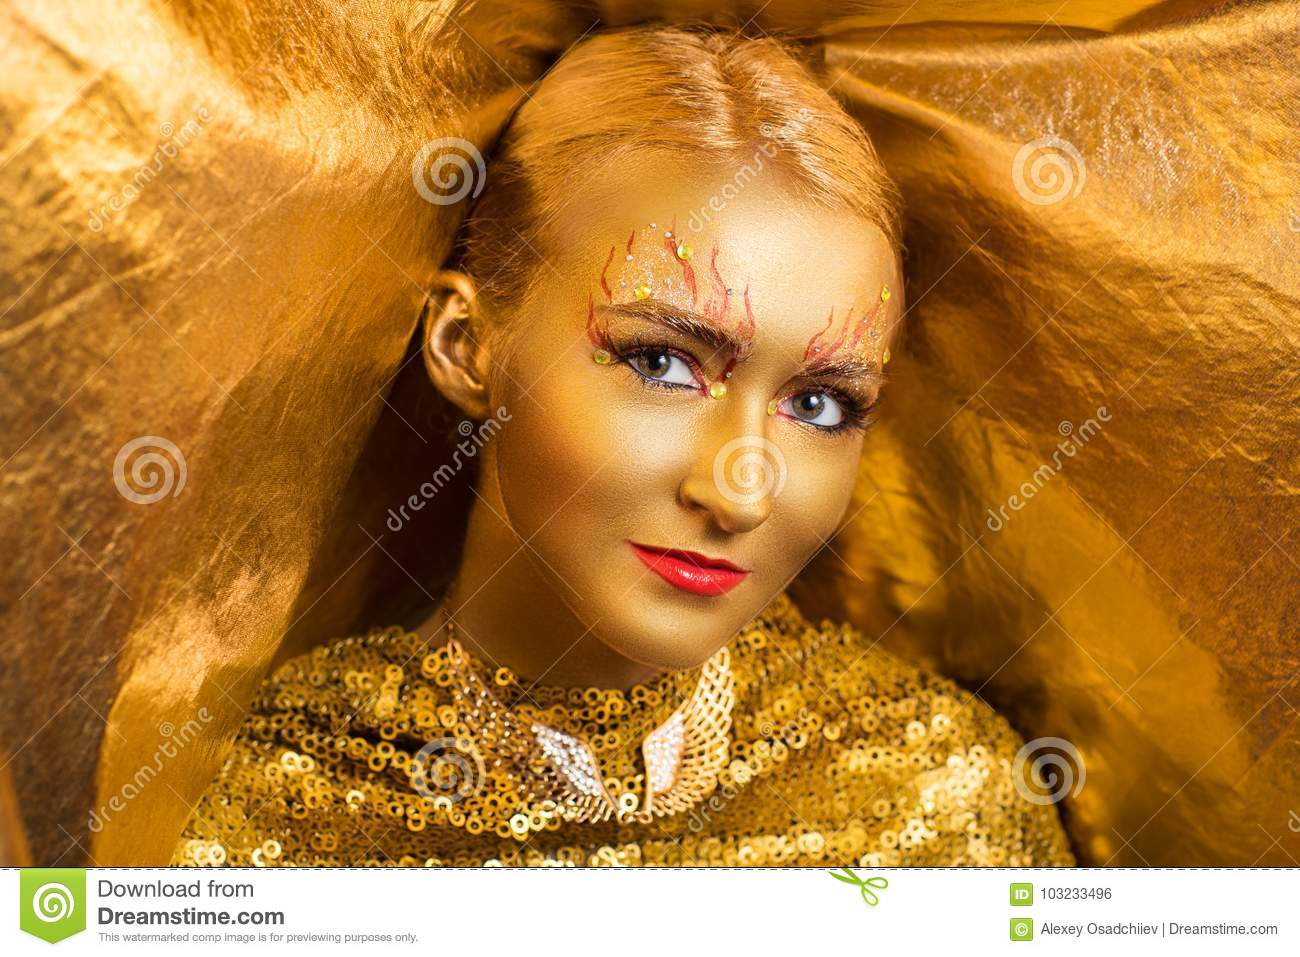 Golden make up stock photo  Image of looking, making - 103233496